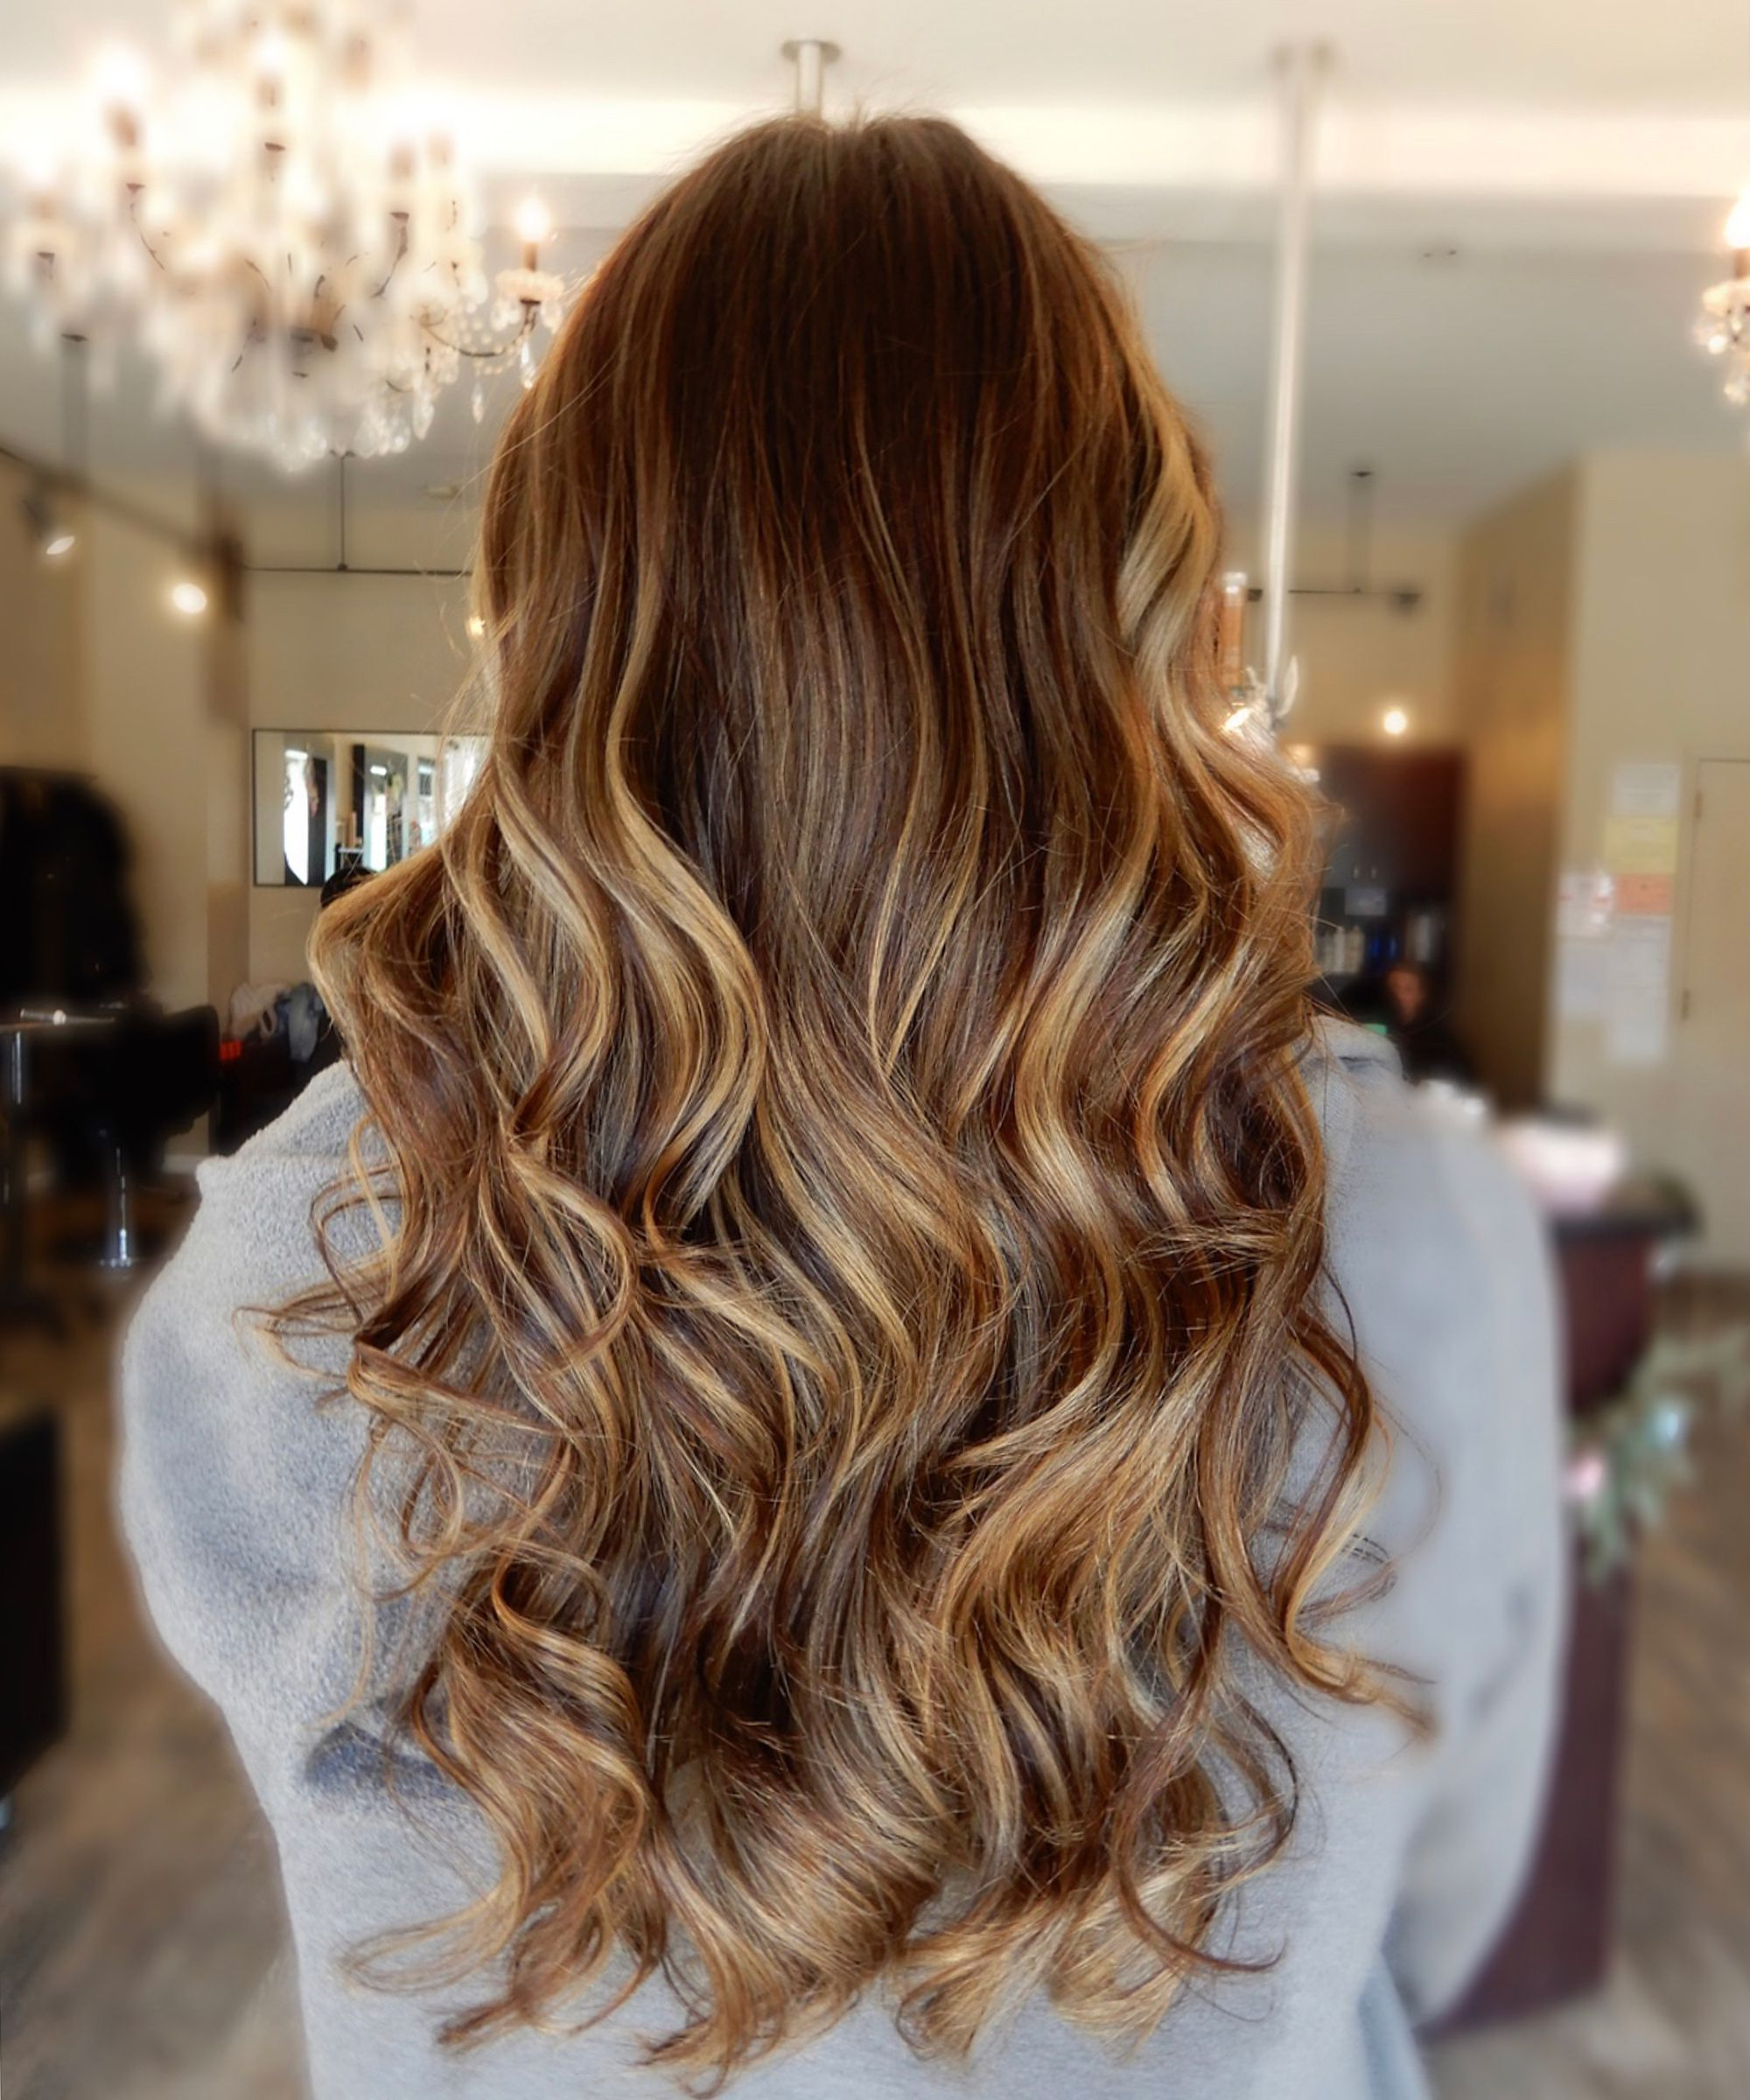 Cold Brew Hair Color Is Trending For Fall 2018 For Soft Brown And Caramel Wavy Bob Hairstyles (View 23 of 25)